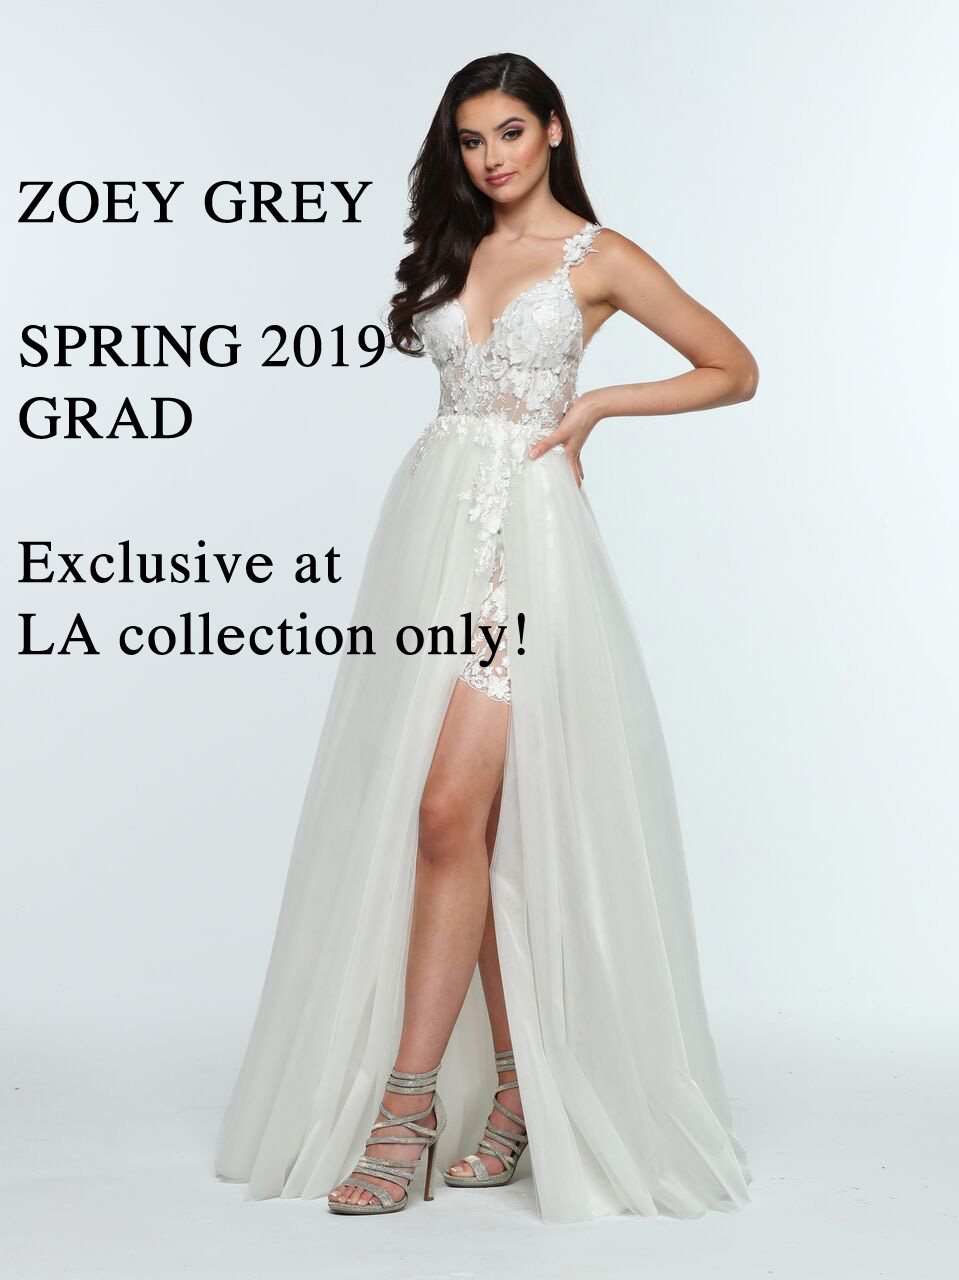 ZOEY GREY SPRING 2019 GRAD TRUNK SHOW - Hundreds of these dresses are EXCLUSIVE to LA Collection and we are the only store in Manitoba that can carry this exclusive line.Starting November 17 - November 25SCRATCH & SAVE Event and ENTER & WIN Prizes!Many promotions in store you don't want to miss!